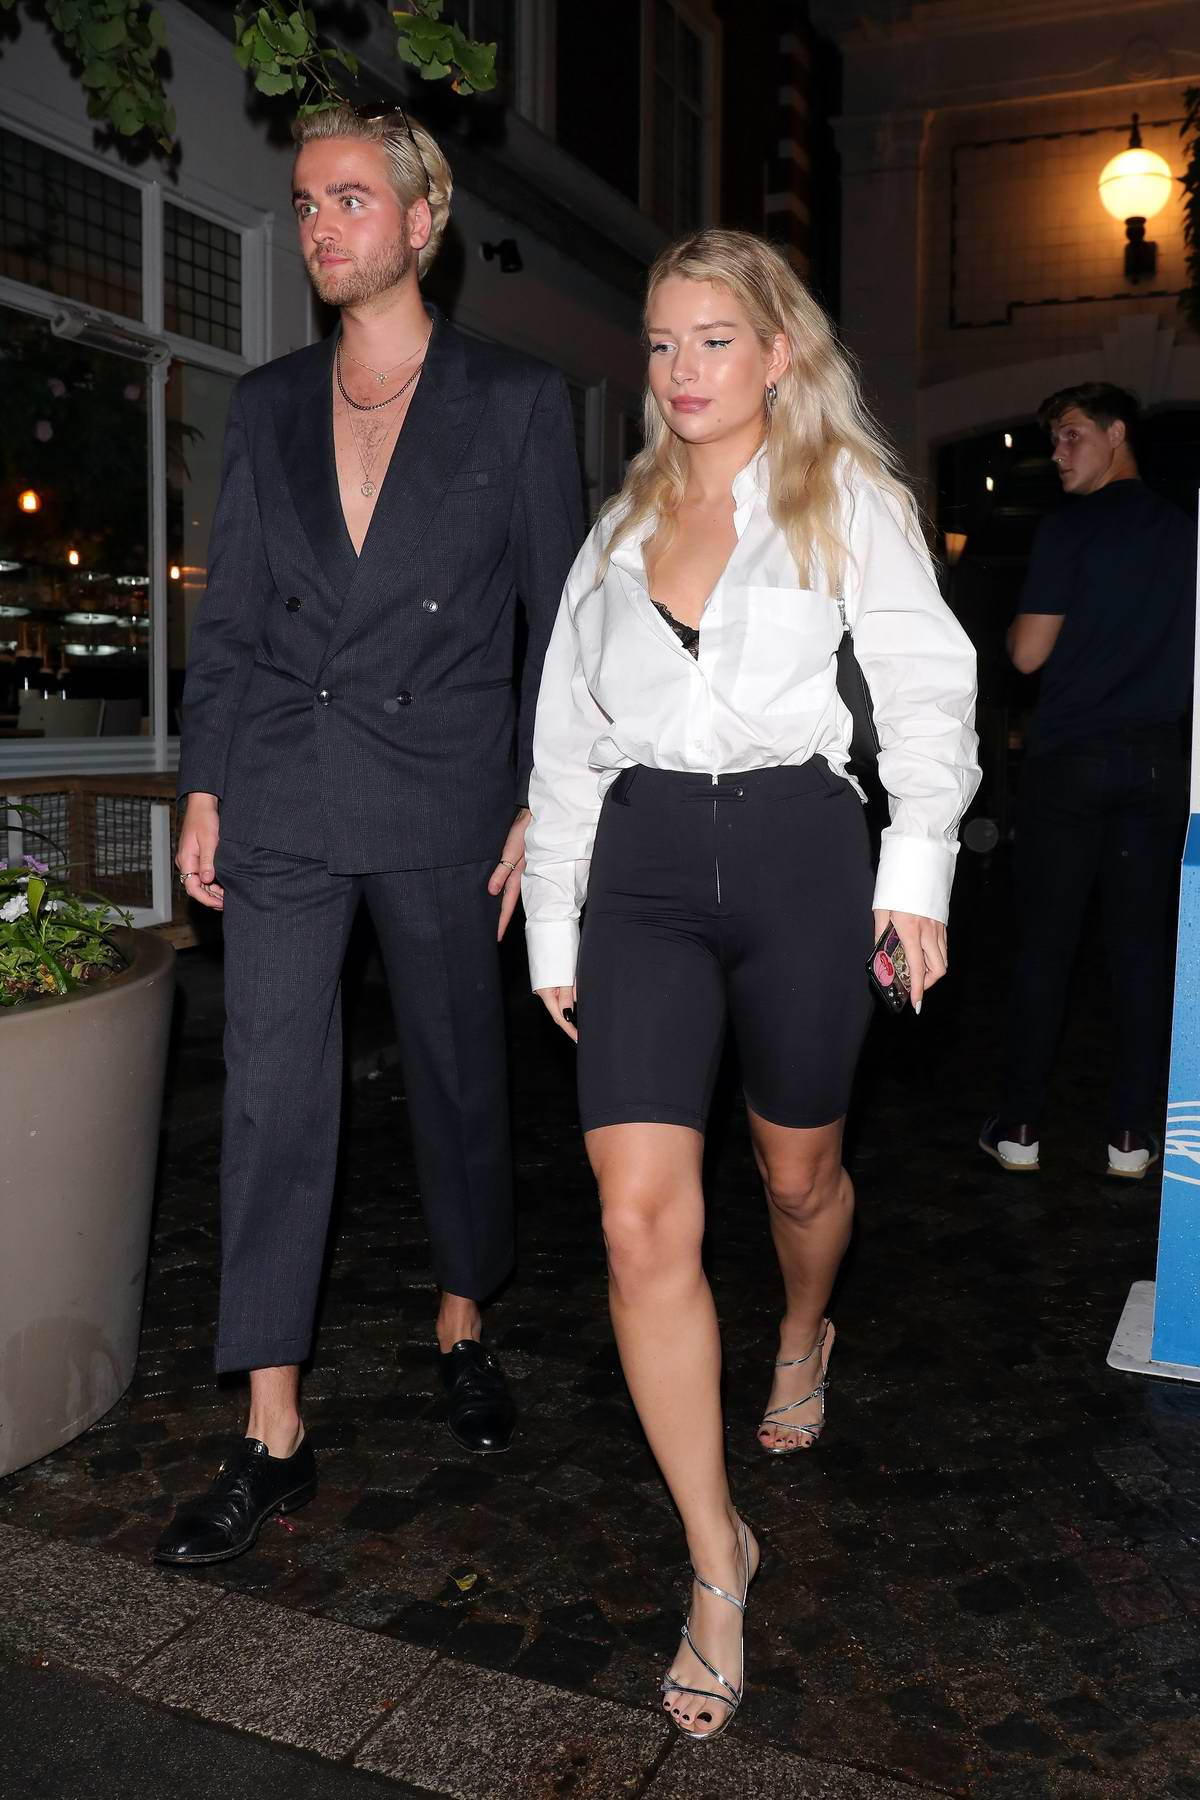 Lottie Moss looks stylish during a night out with friends at Bluebird Chelsea, London, UK